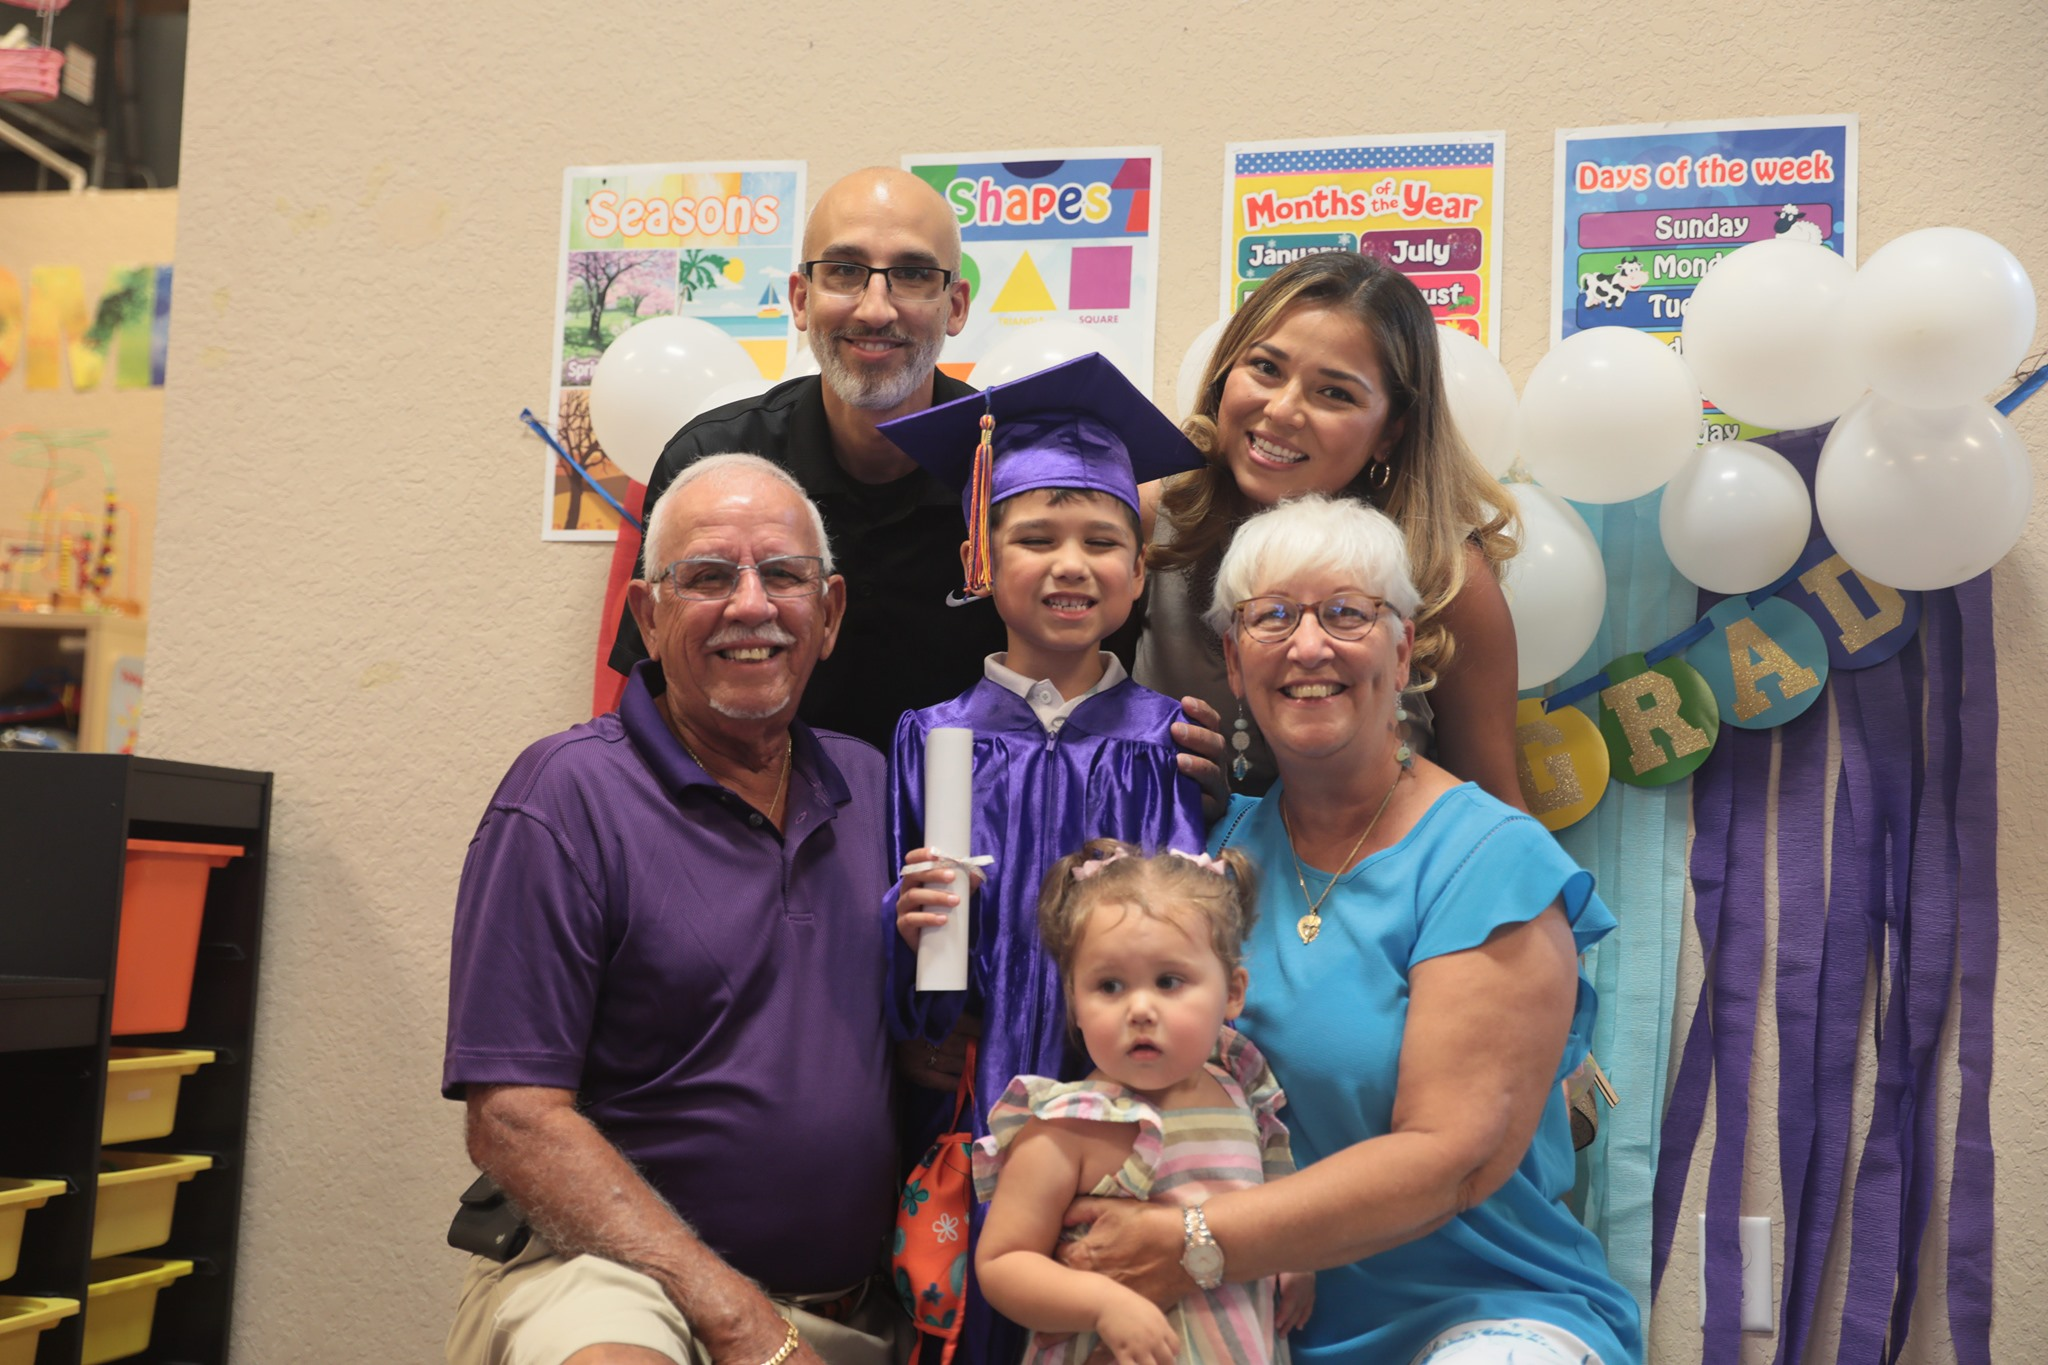 Child graduating preschool with their proud family